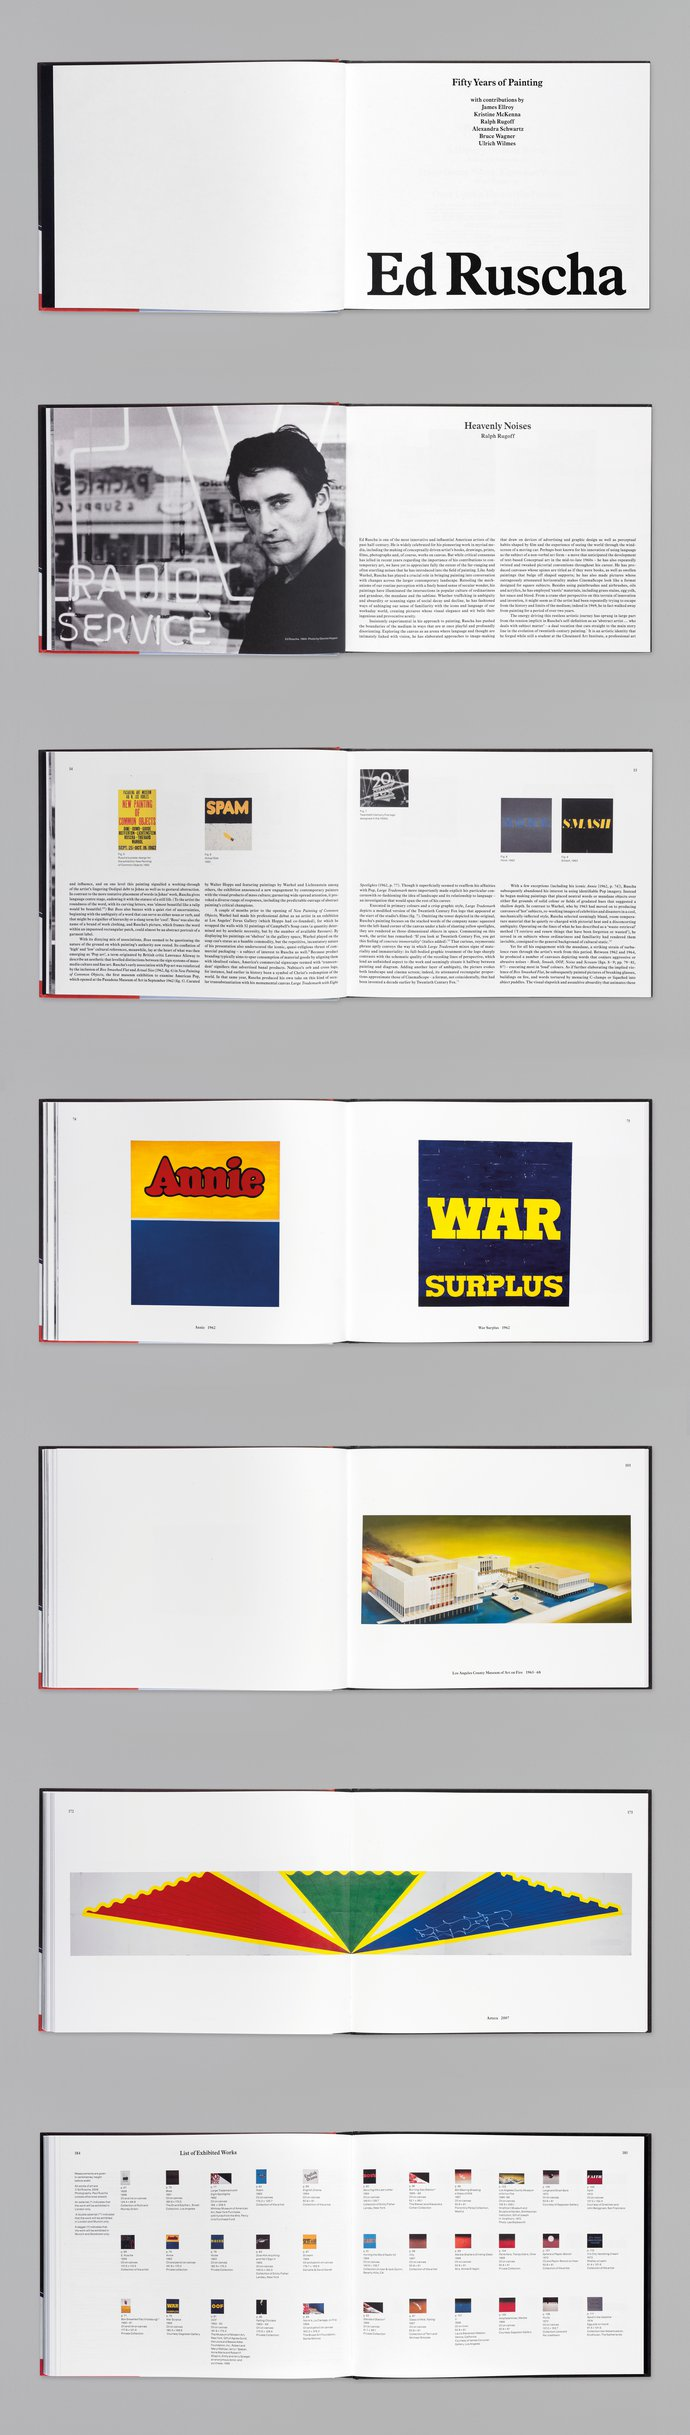 Hayward Gallery – Ed Ruscha: Fifty Years of Painting, 2010 (Publication), image 2